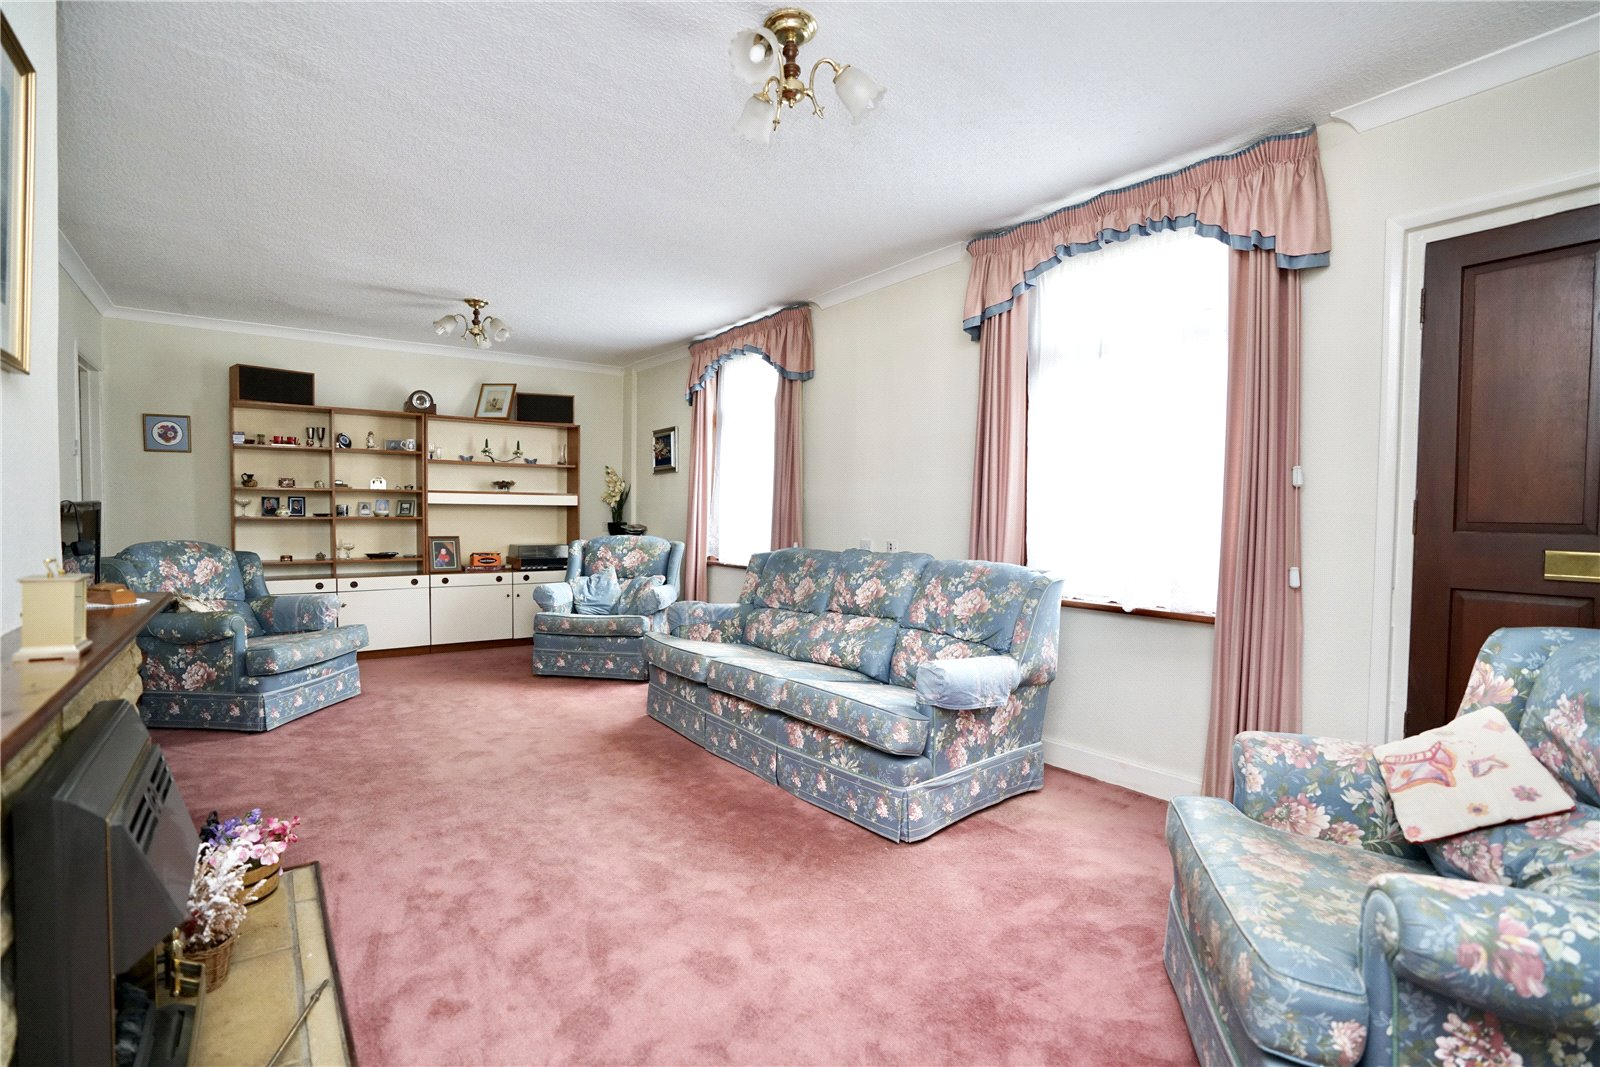 3 bed house for sale in Great North Road, Eaton Socon  - Property Image 12